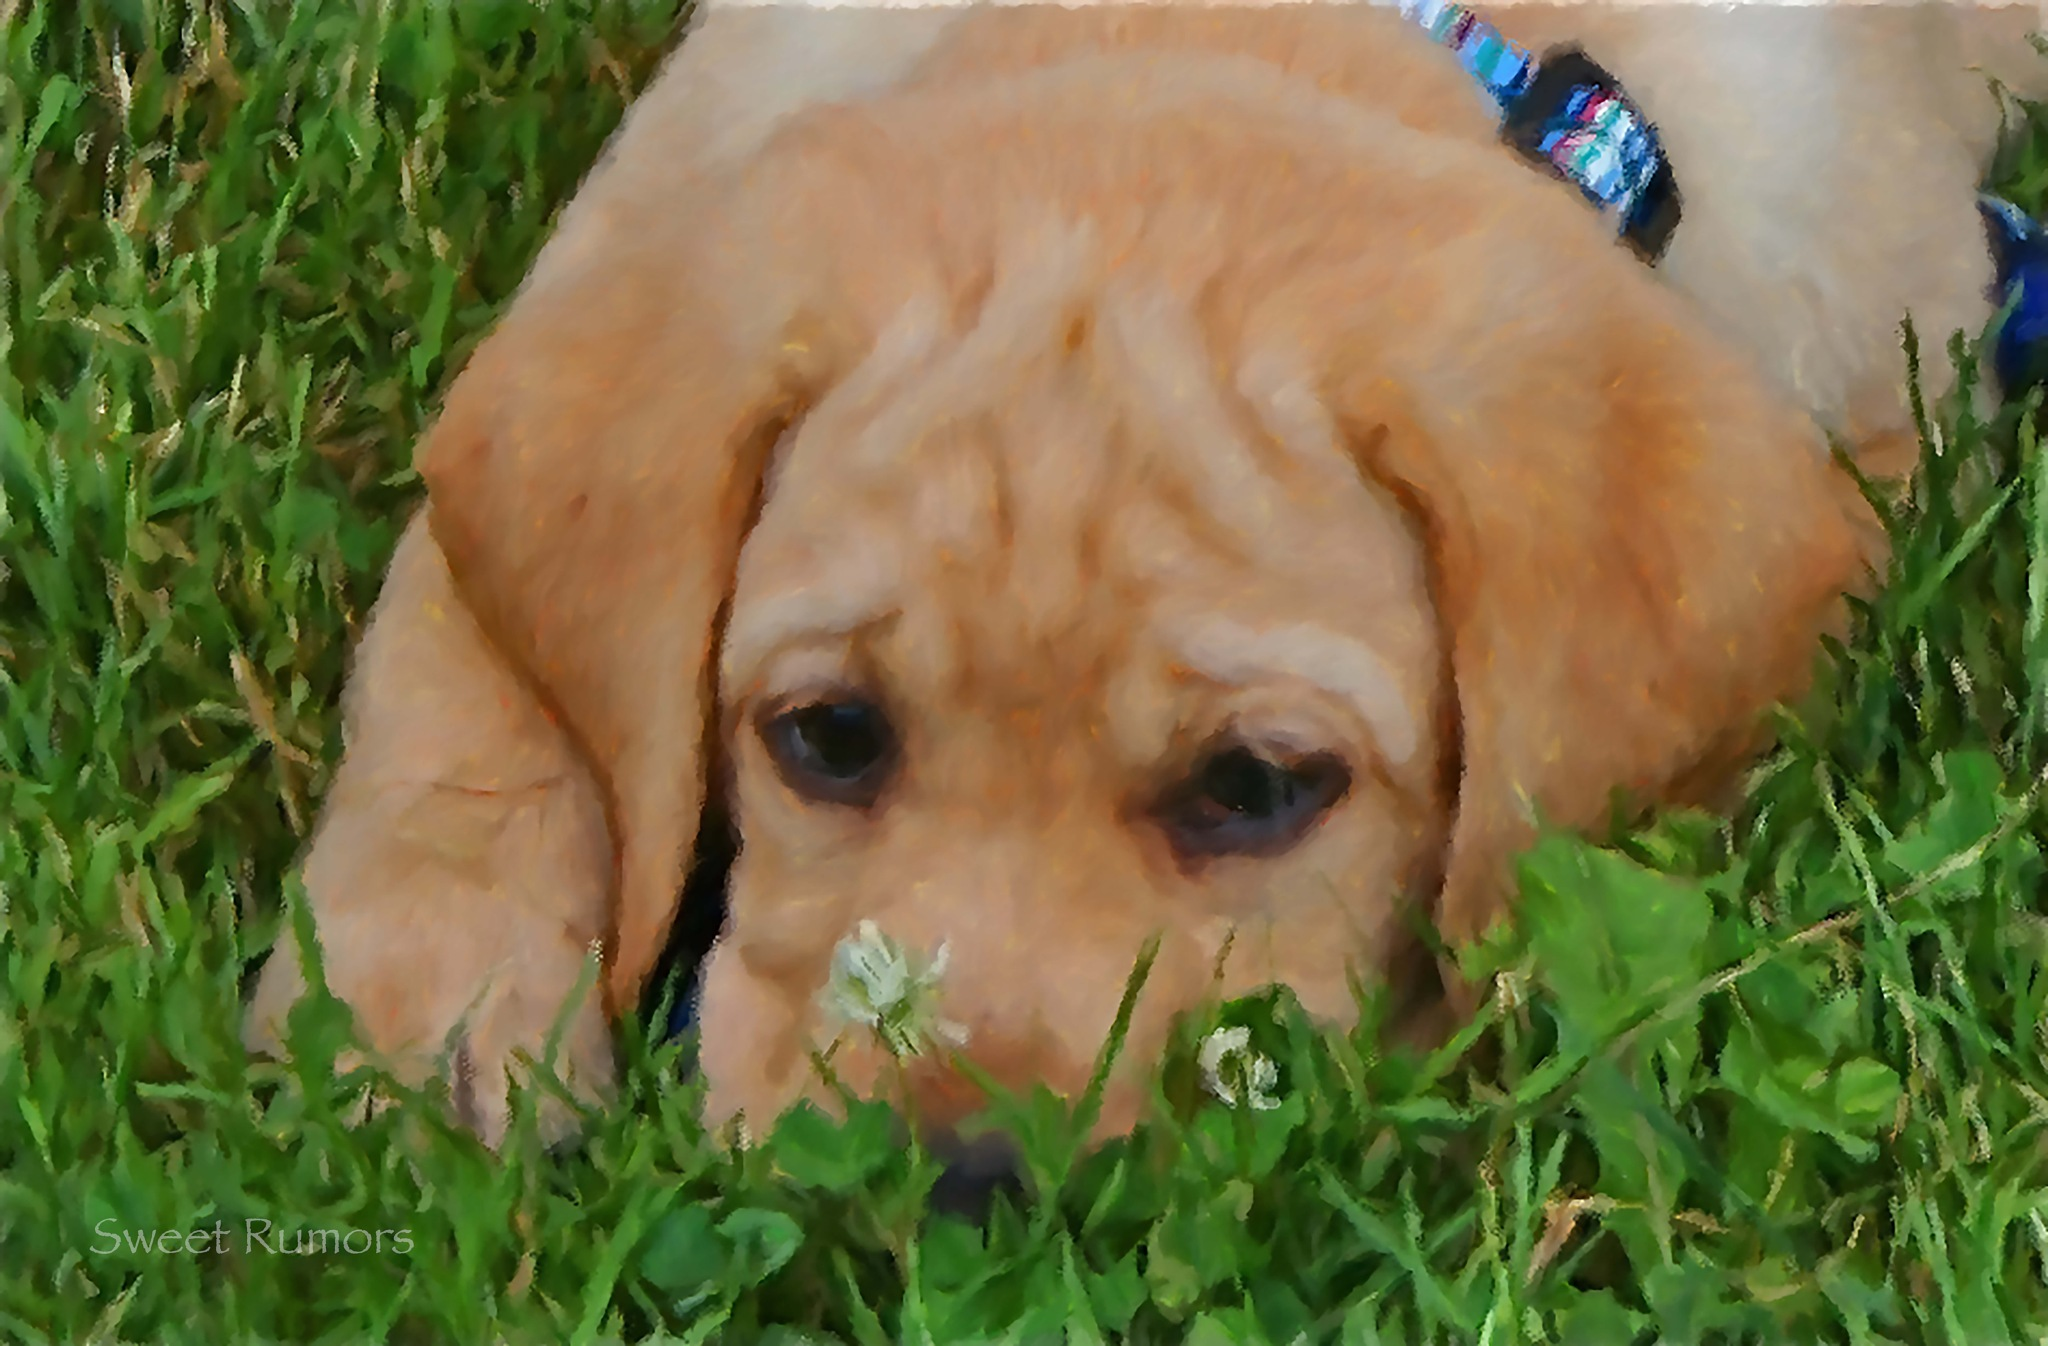 Puppy contemplating clover by Sweet Rumors